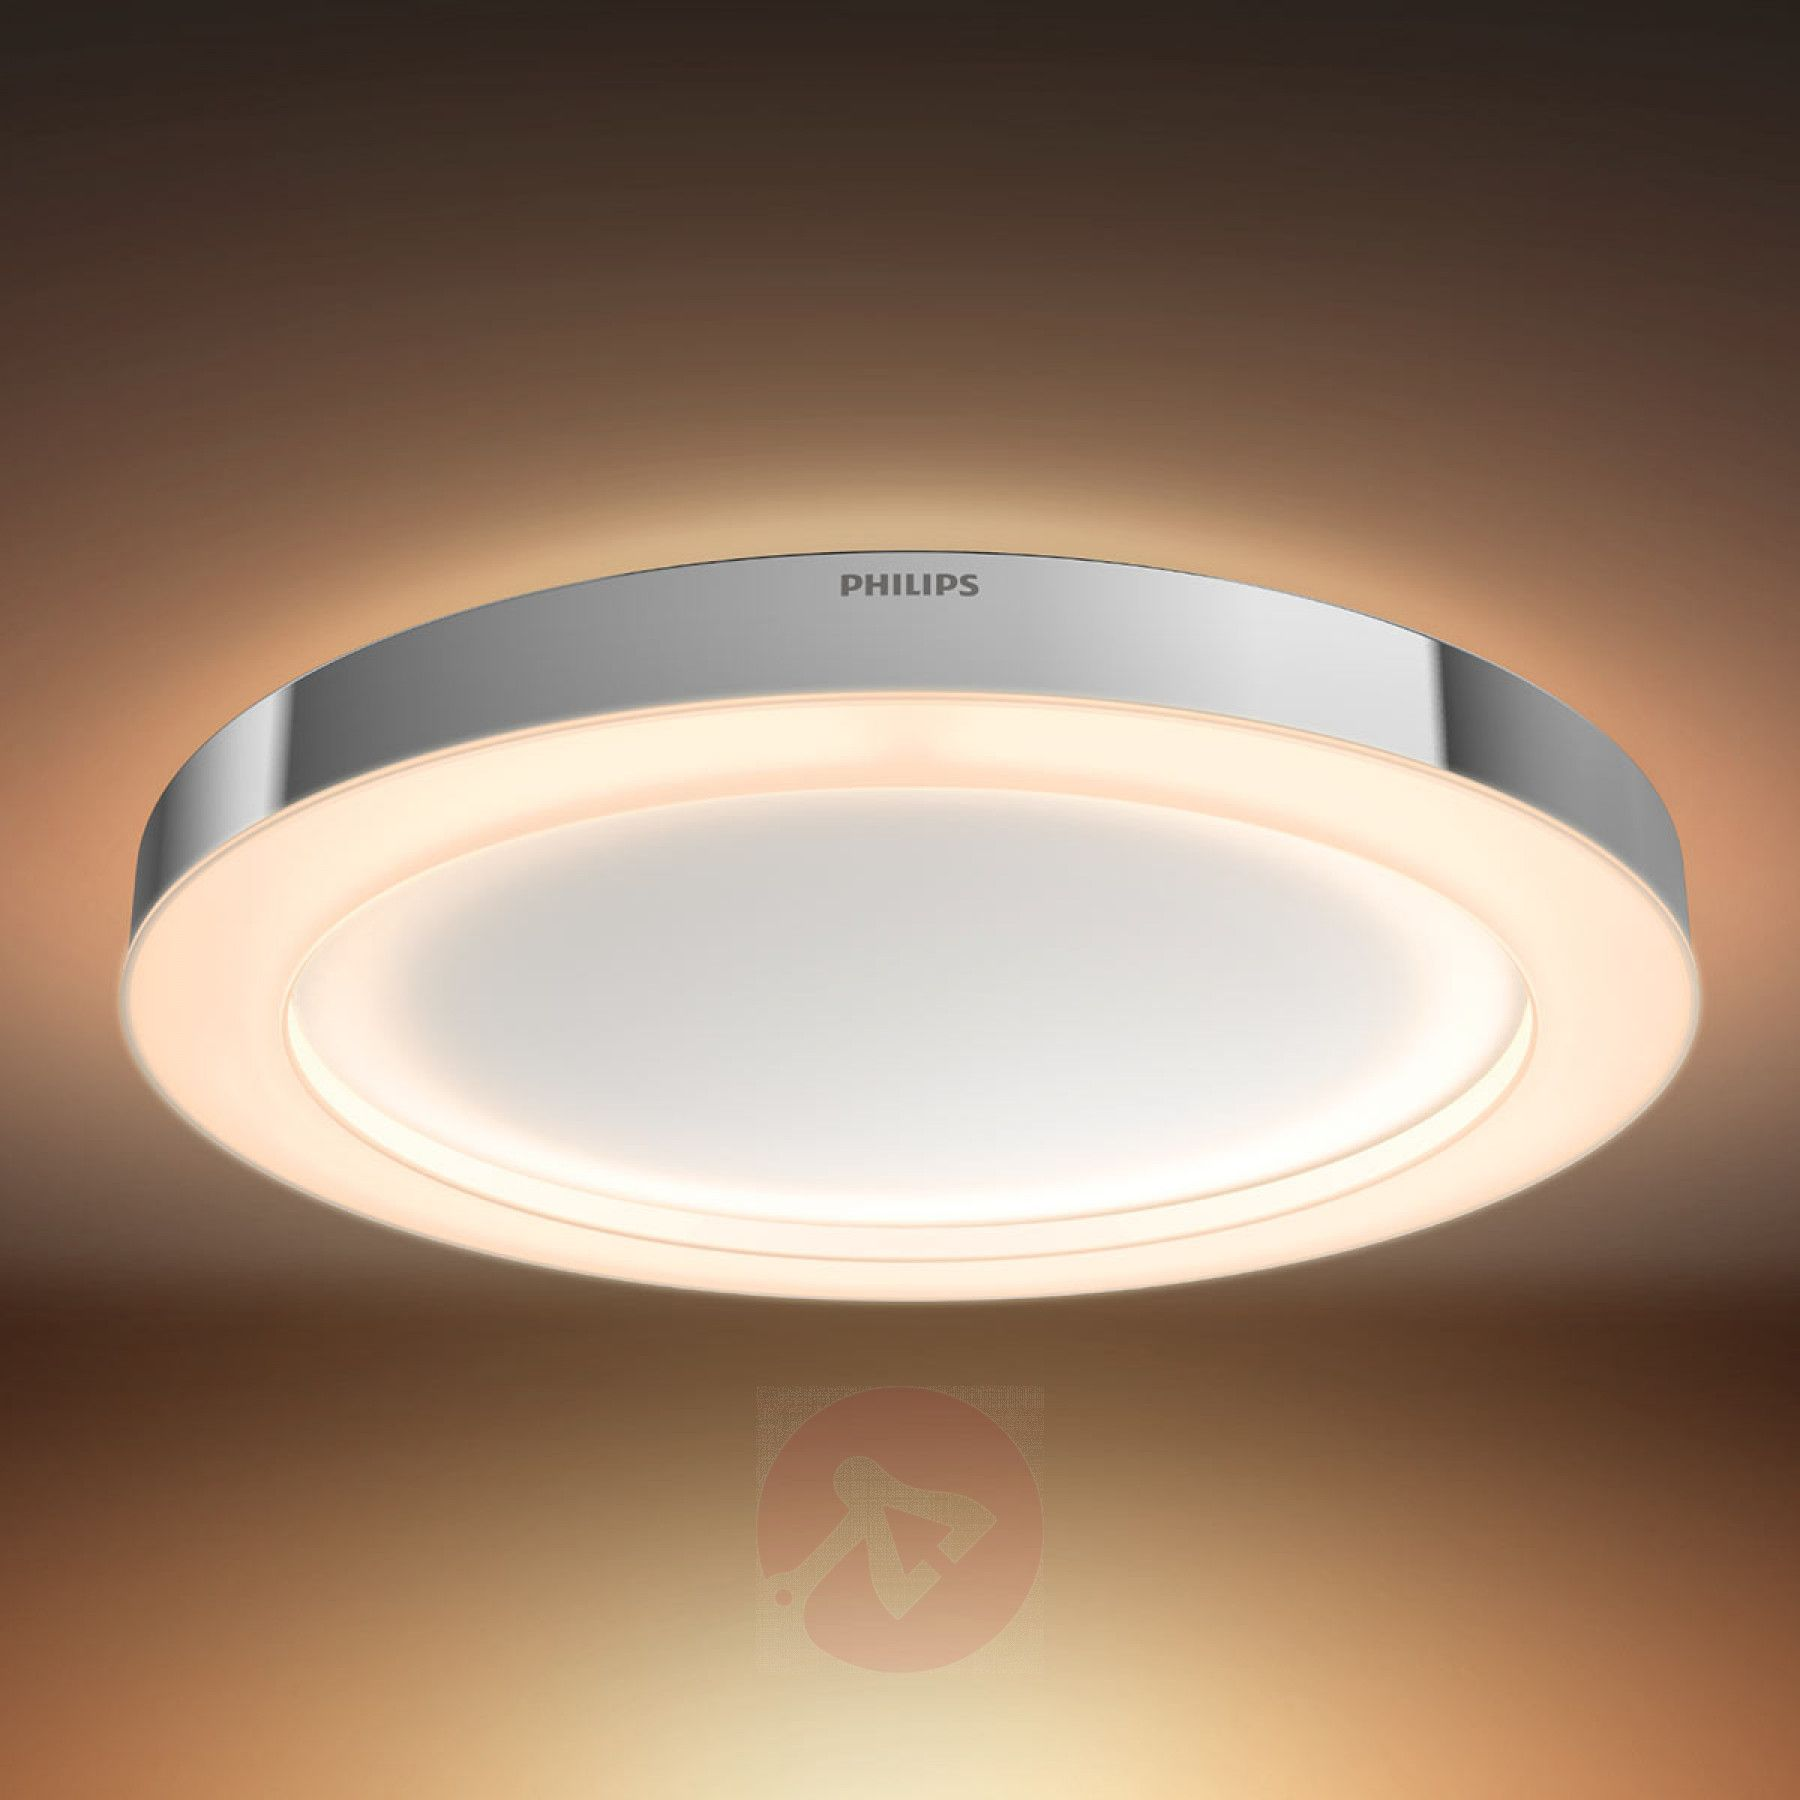 Philips Hue White Ambiance Adore Bad Deckenlampe Badkamer